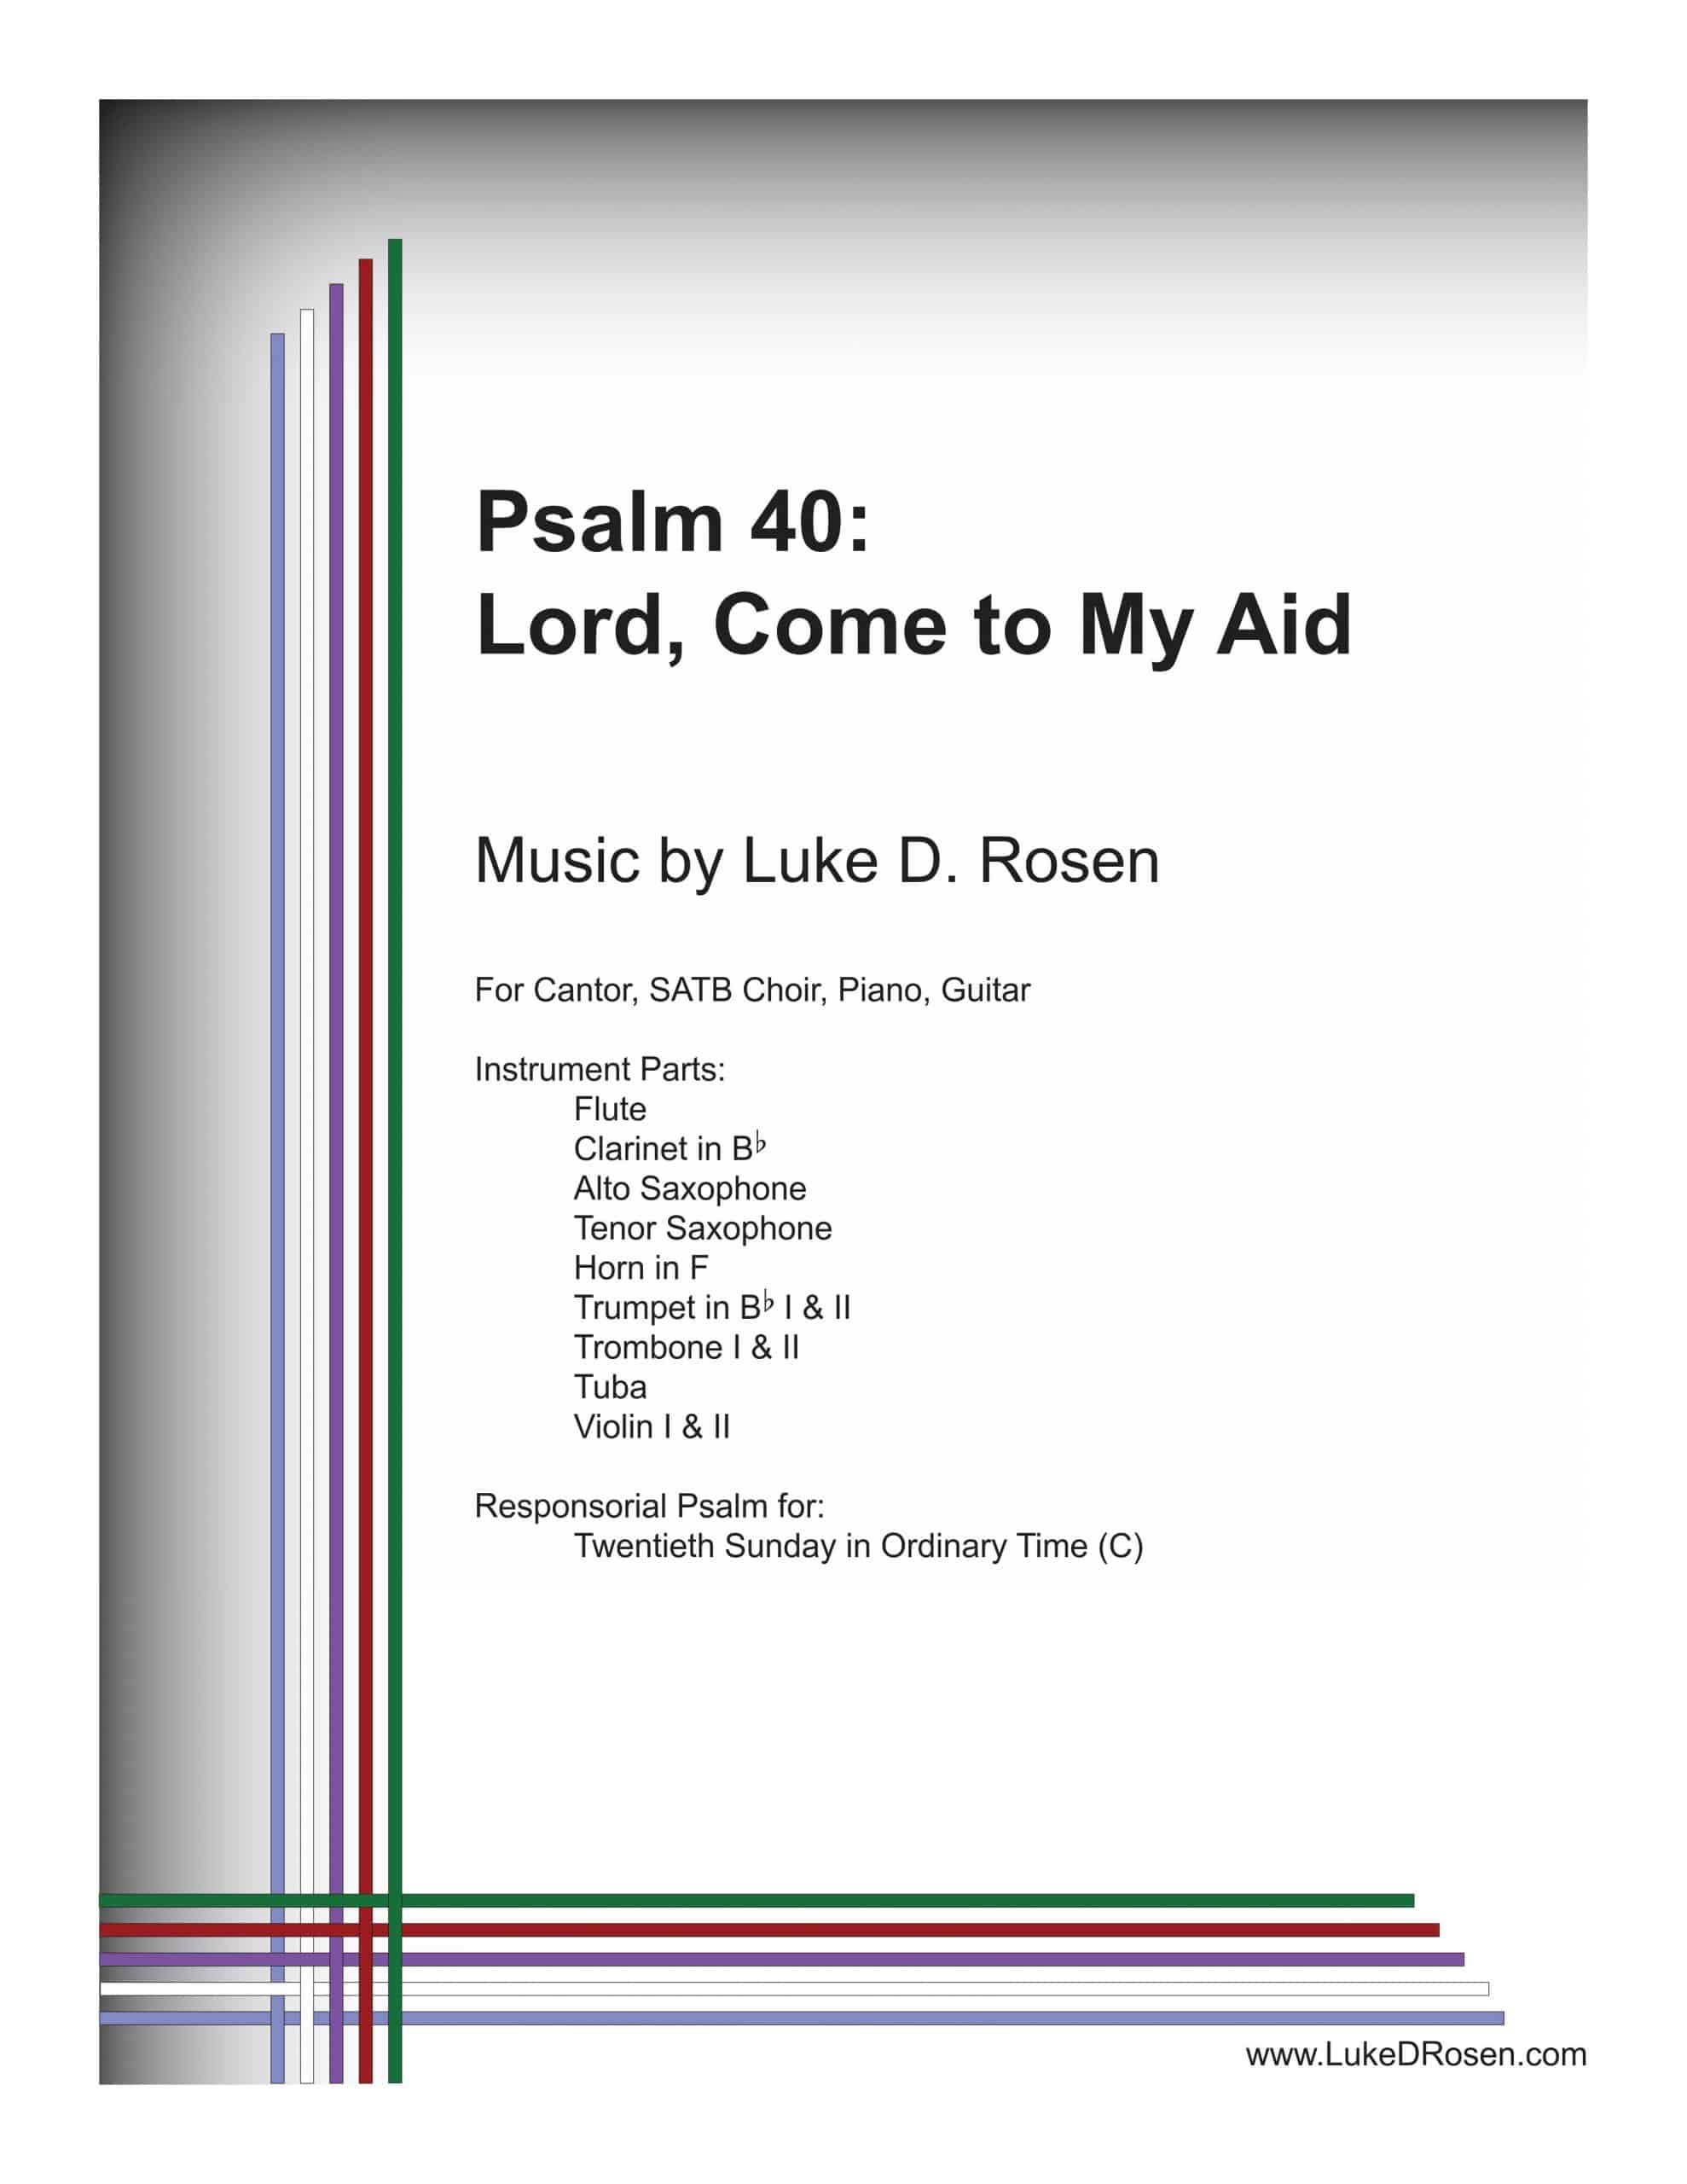 Psalm 40 Lord Come to My Aid ROSEN Sample Complete PDF scaled